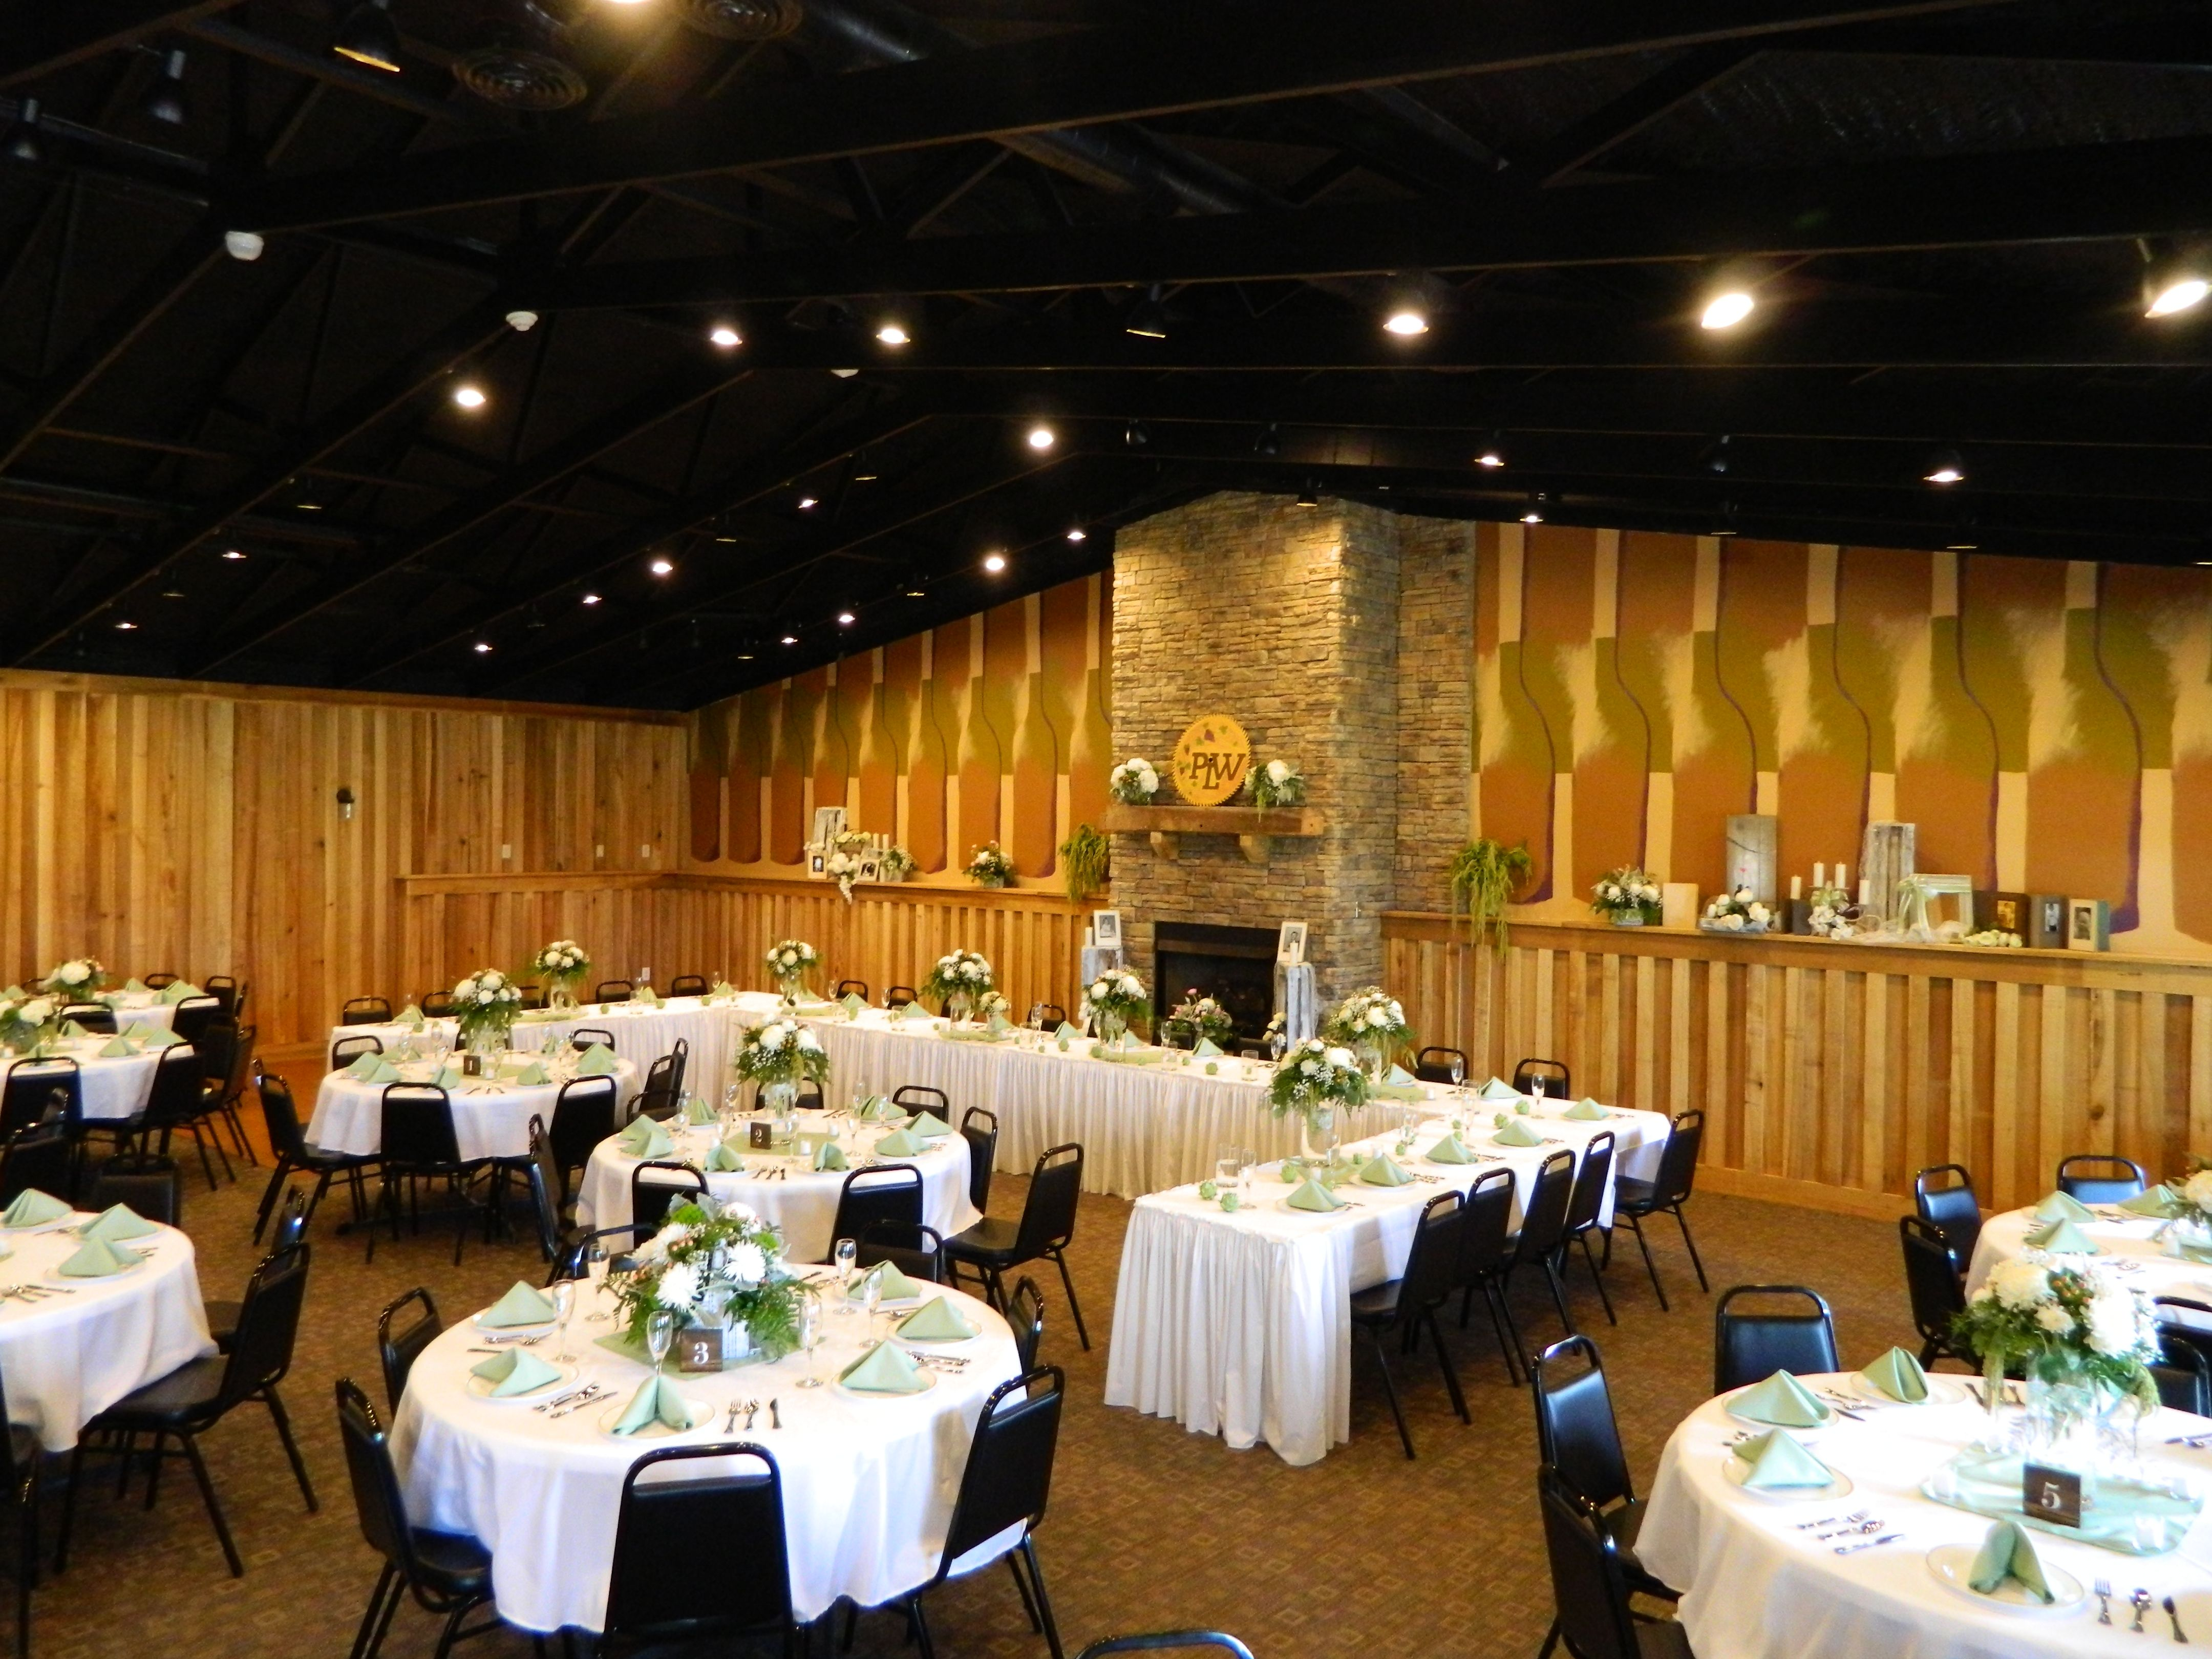 Patoka Lake Winerys Event Center Set Up For Our 3rd Wedding Reception